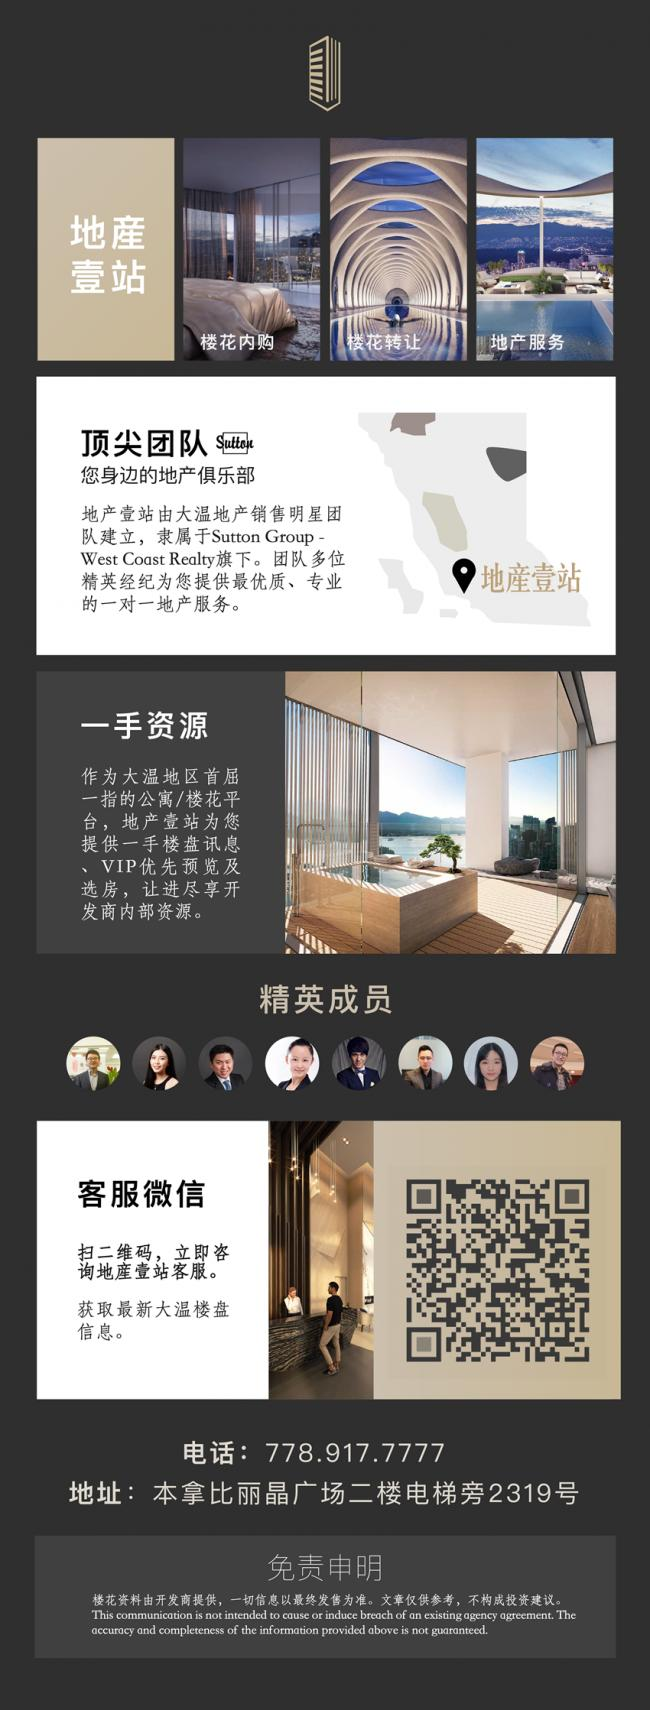 WeChat Image_20180310222048.png